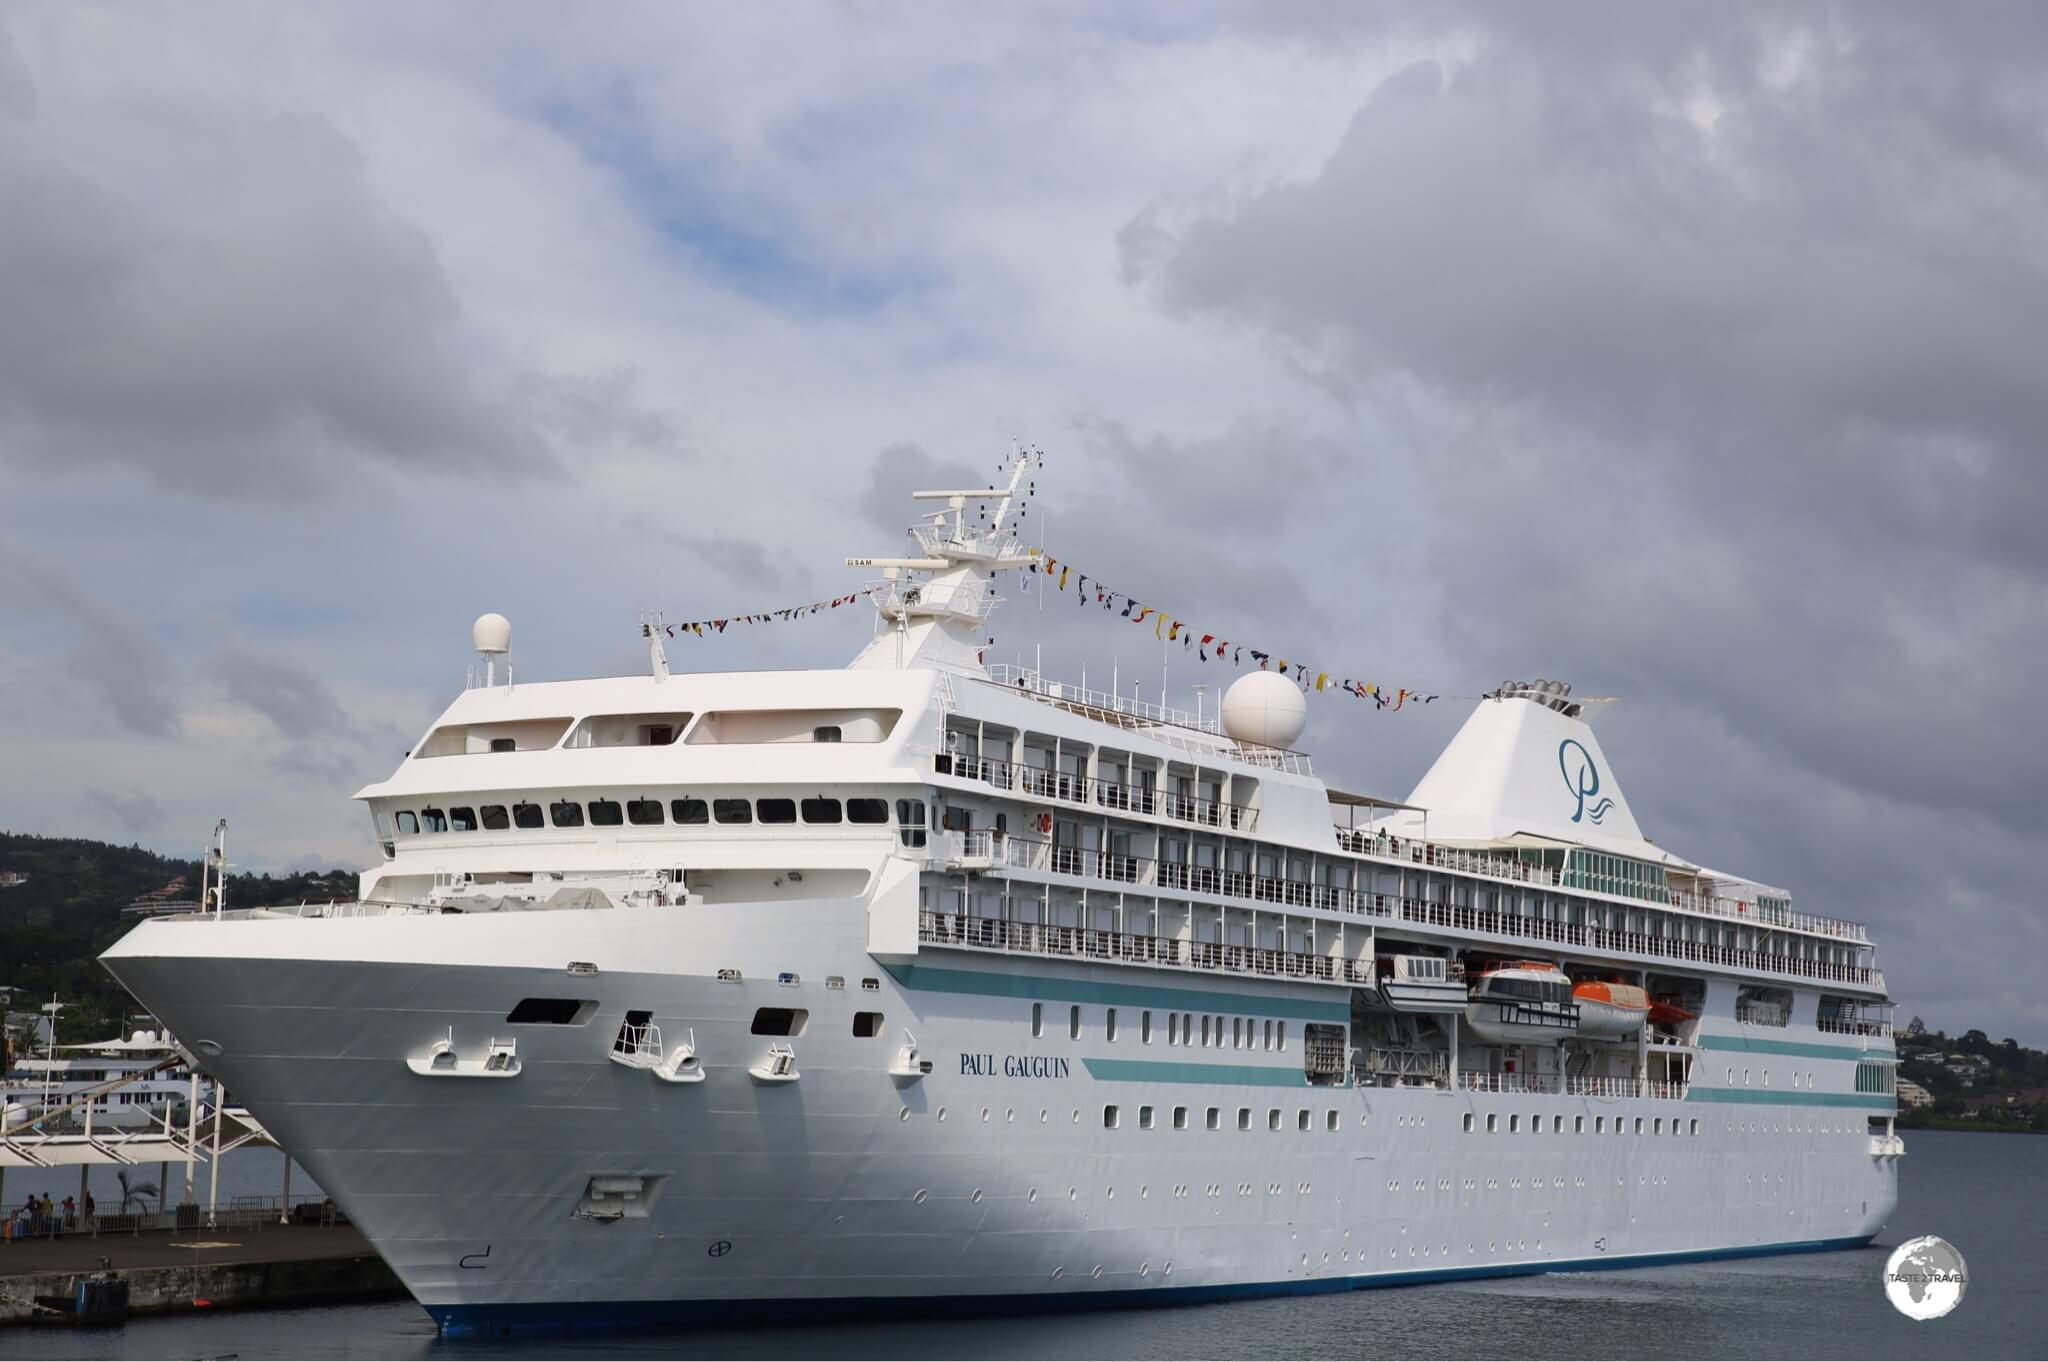 The 'Paul Gauguin' cruise ship in Papeete harbour.